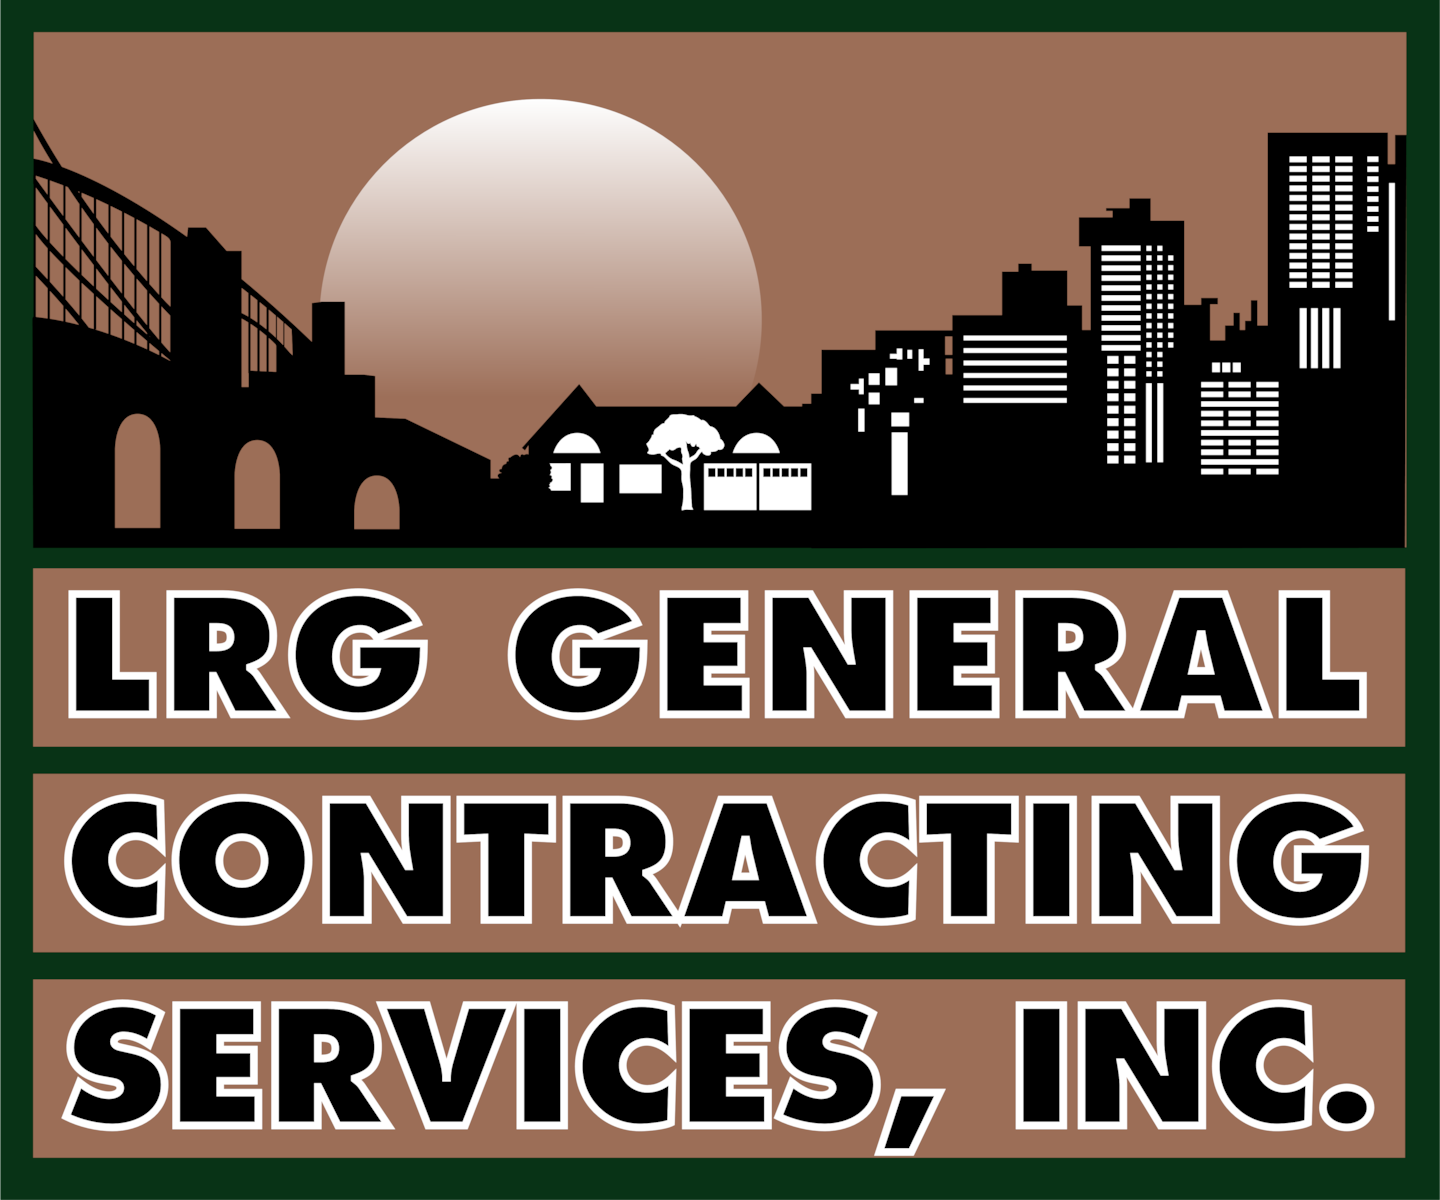 LRG General Contracting Services, Inc.